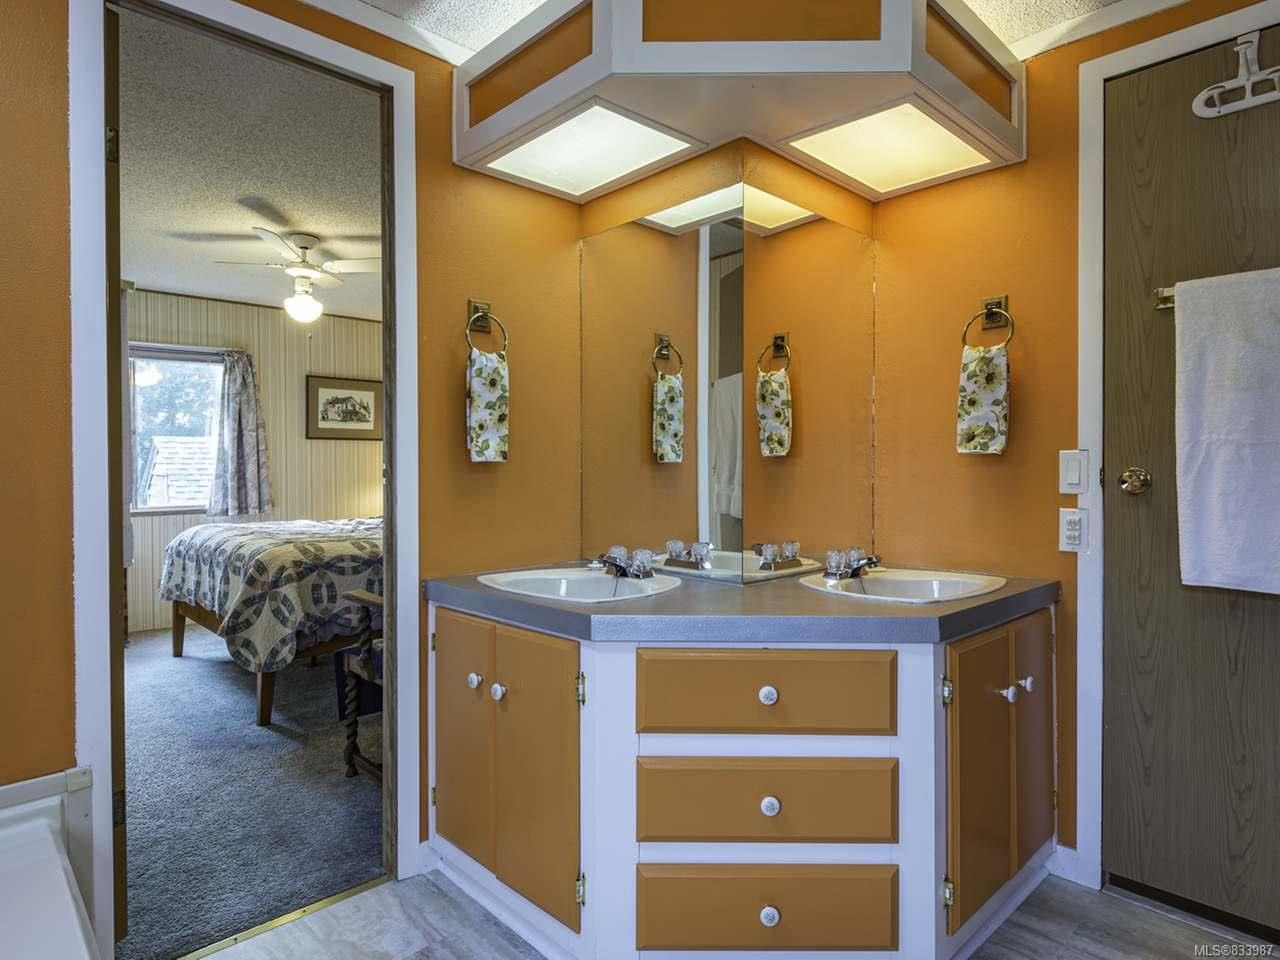 Photo 24: Photos: 64 390 Cowichan Ave in COURTENAY: CV Courtenay East Manufactured Home for sale (Comox Valley)  : MLS®# 833987